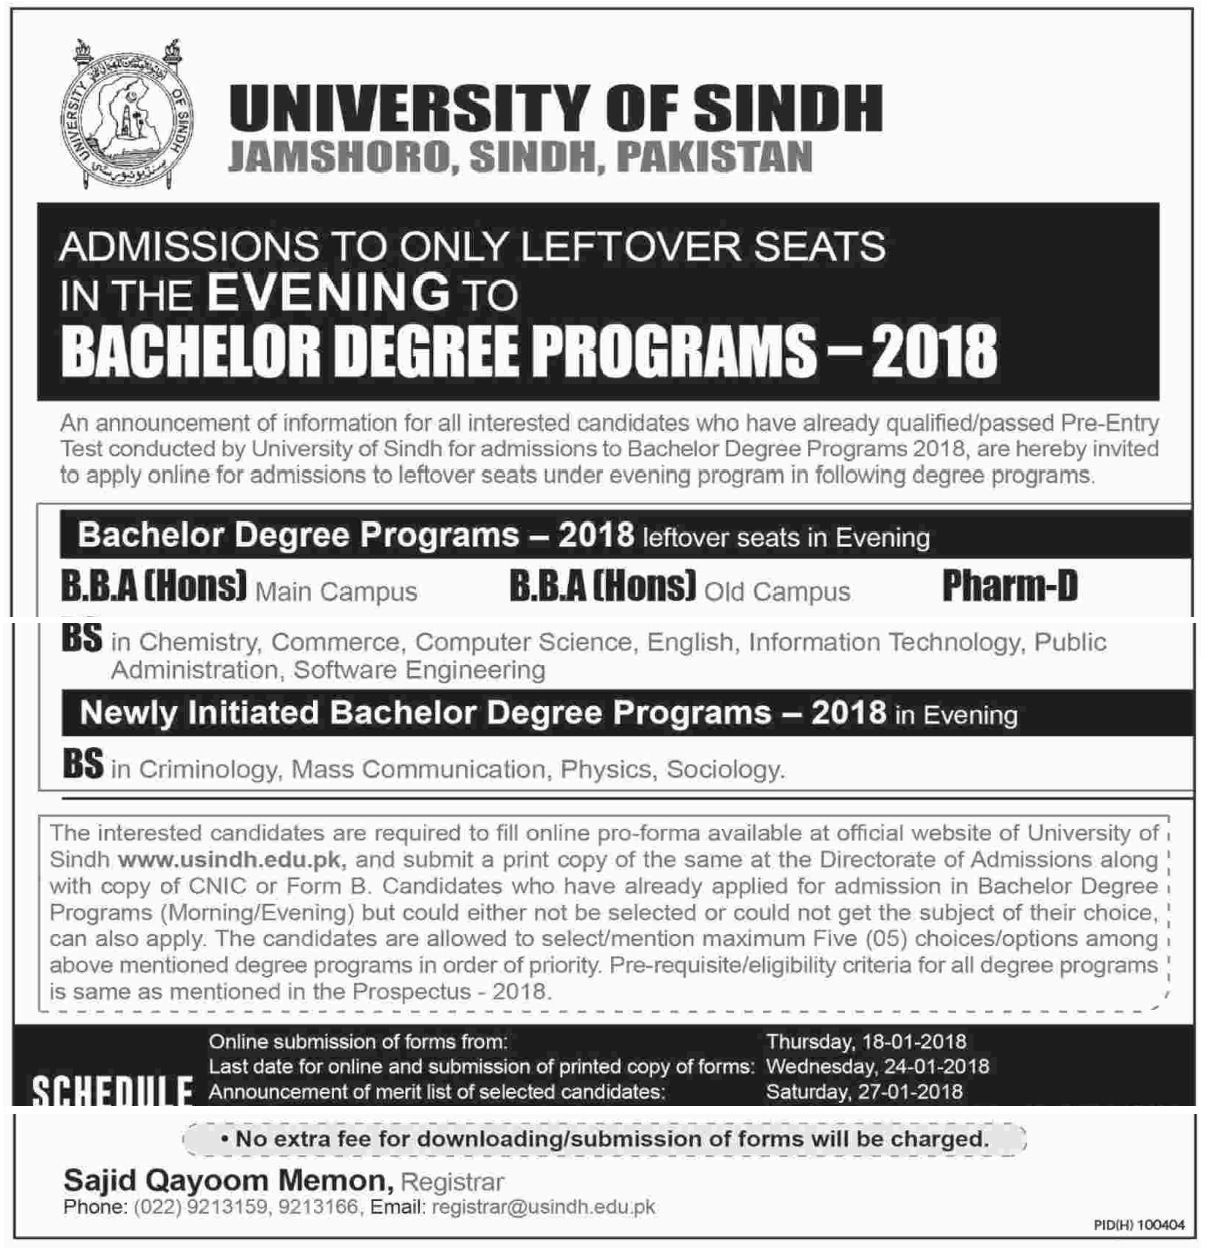 University of Sindh Spring Admission 2018